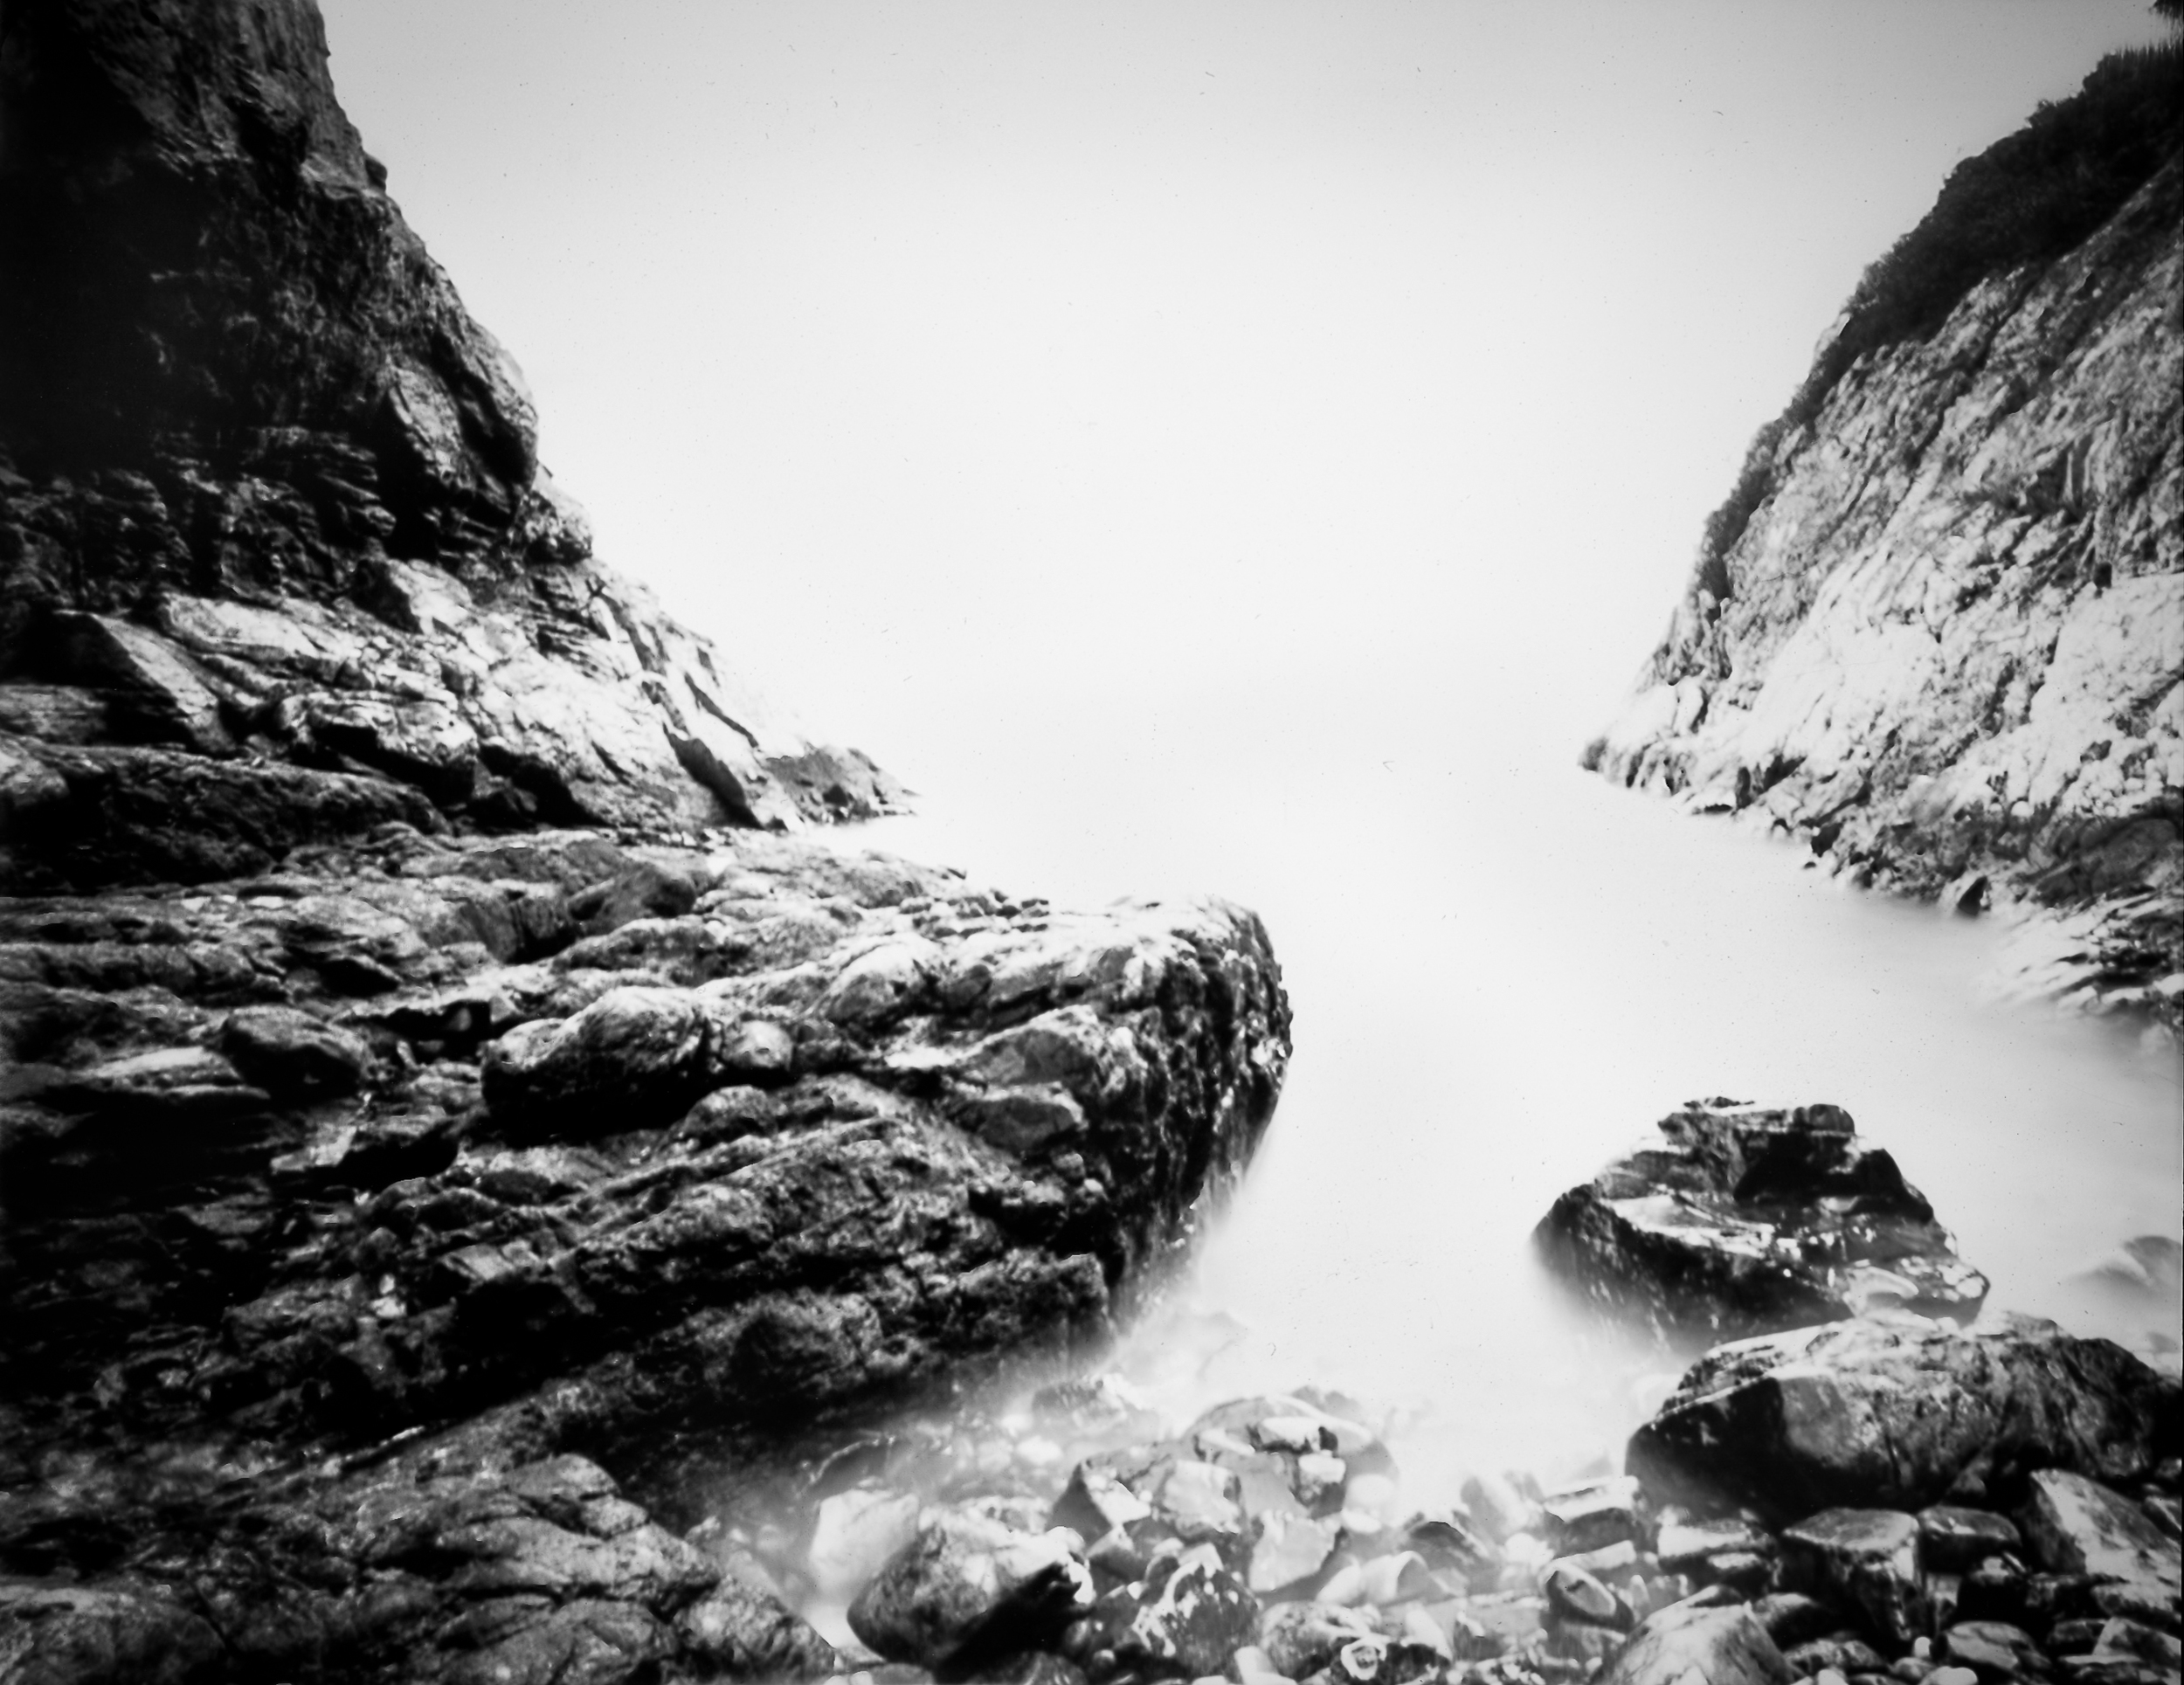 seascape002-Edit.jpg